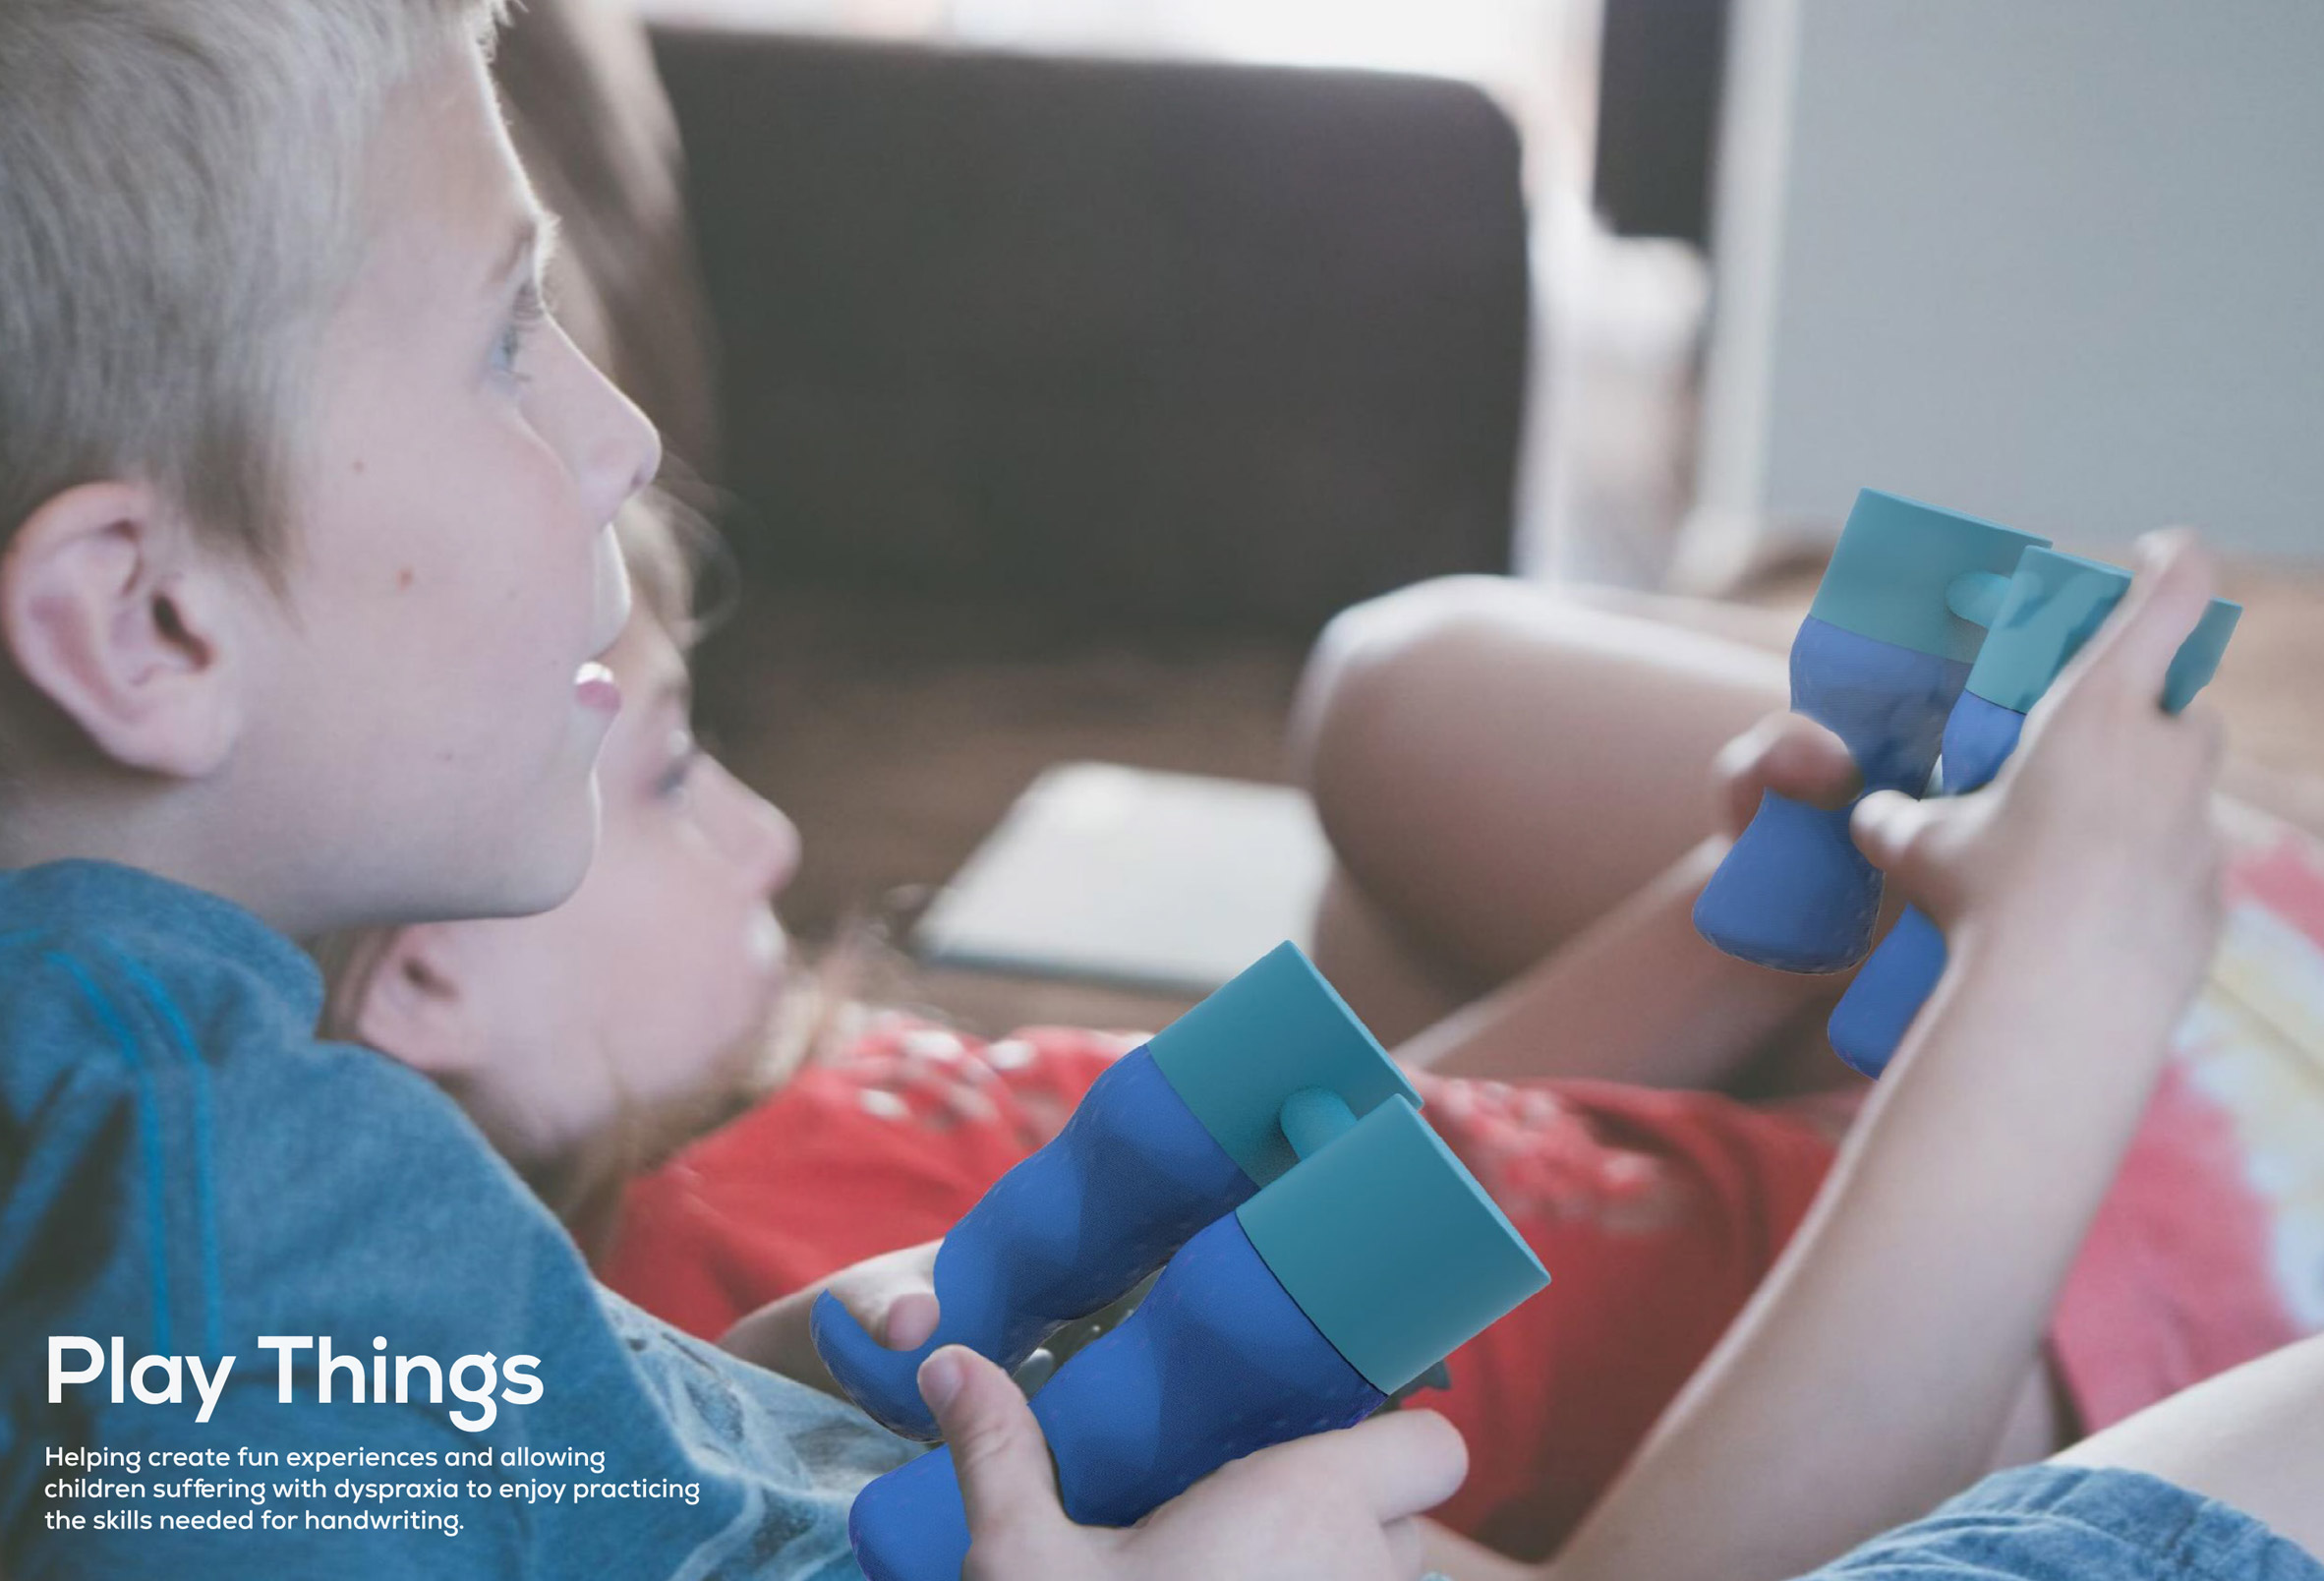 Products from Middlesex grads use play to help children cope with illness